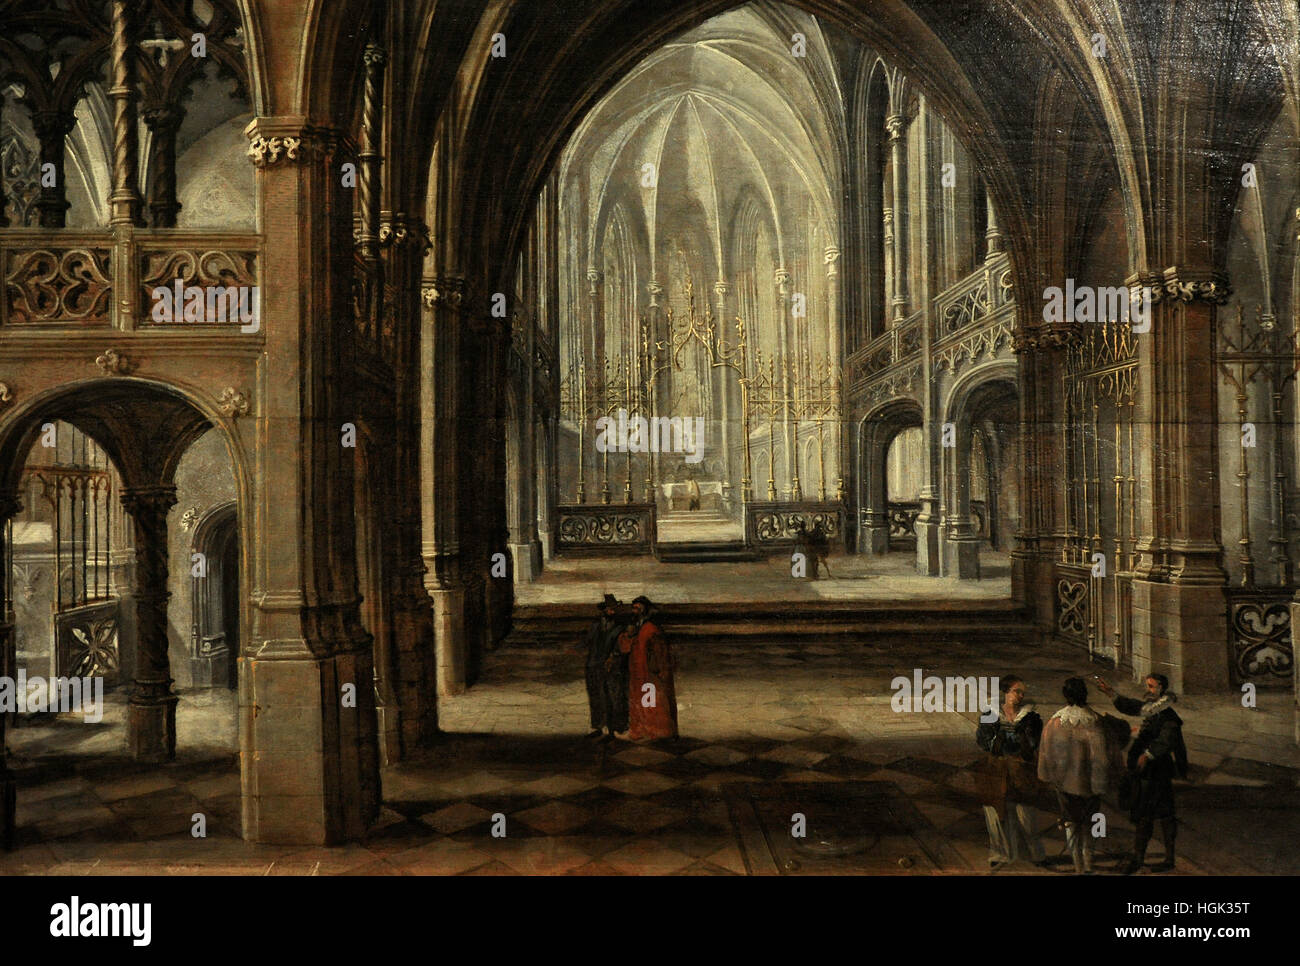 Paul Vredeman de Vries (1567-1630). Interior of a Gothic Church. Flanders, end of 16th C. Oil on wood. National - Stock Image